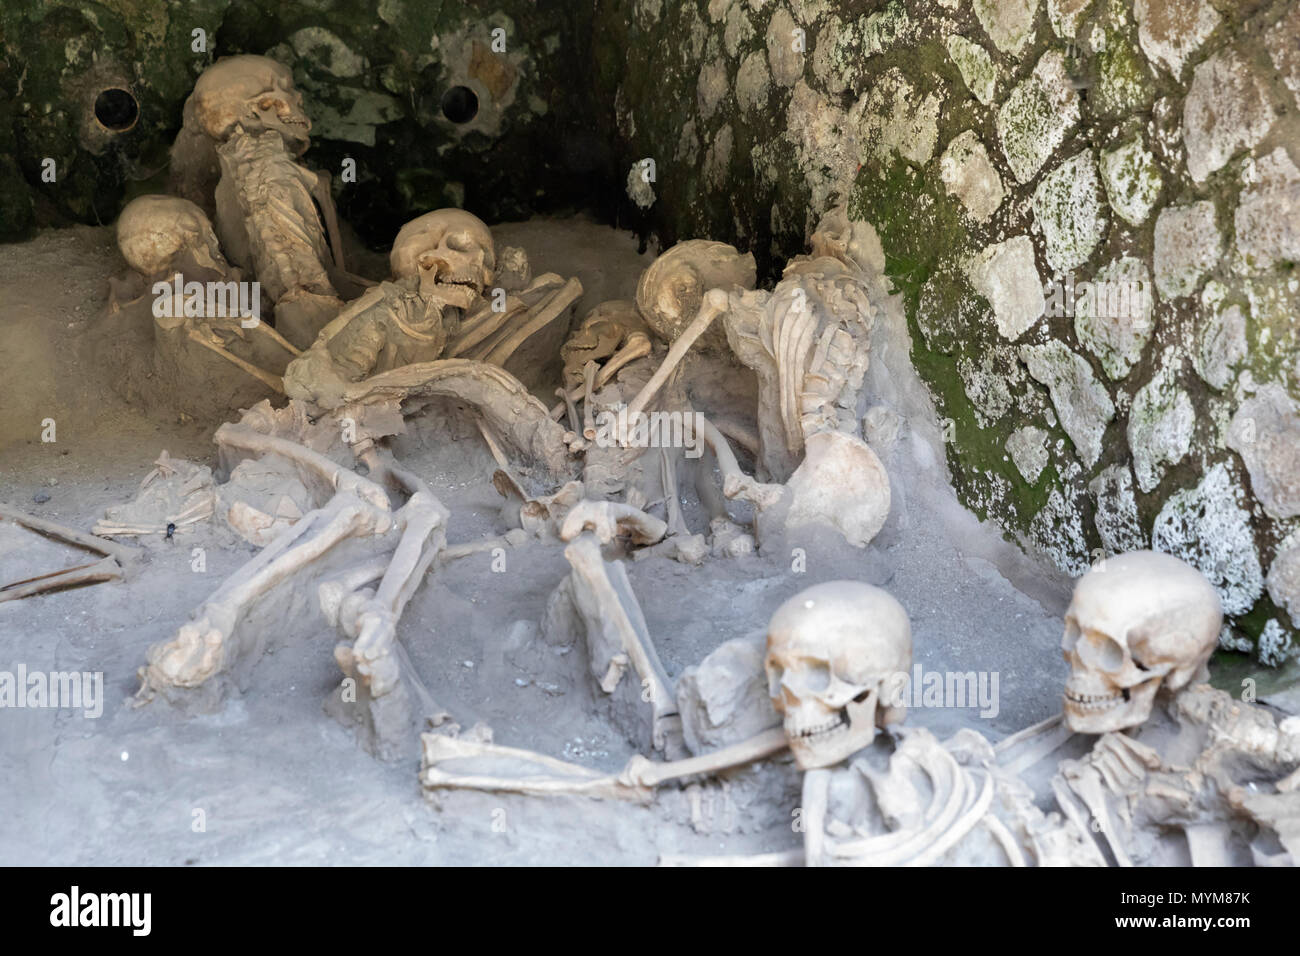 Skeletons of the victims of the Mount Vesuvius eruption of AD 79 found under the barrel arches at the ancient Roman archaeological site of Herculaneum - Stock Image